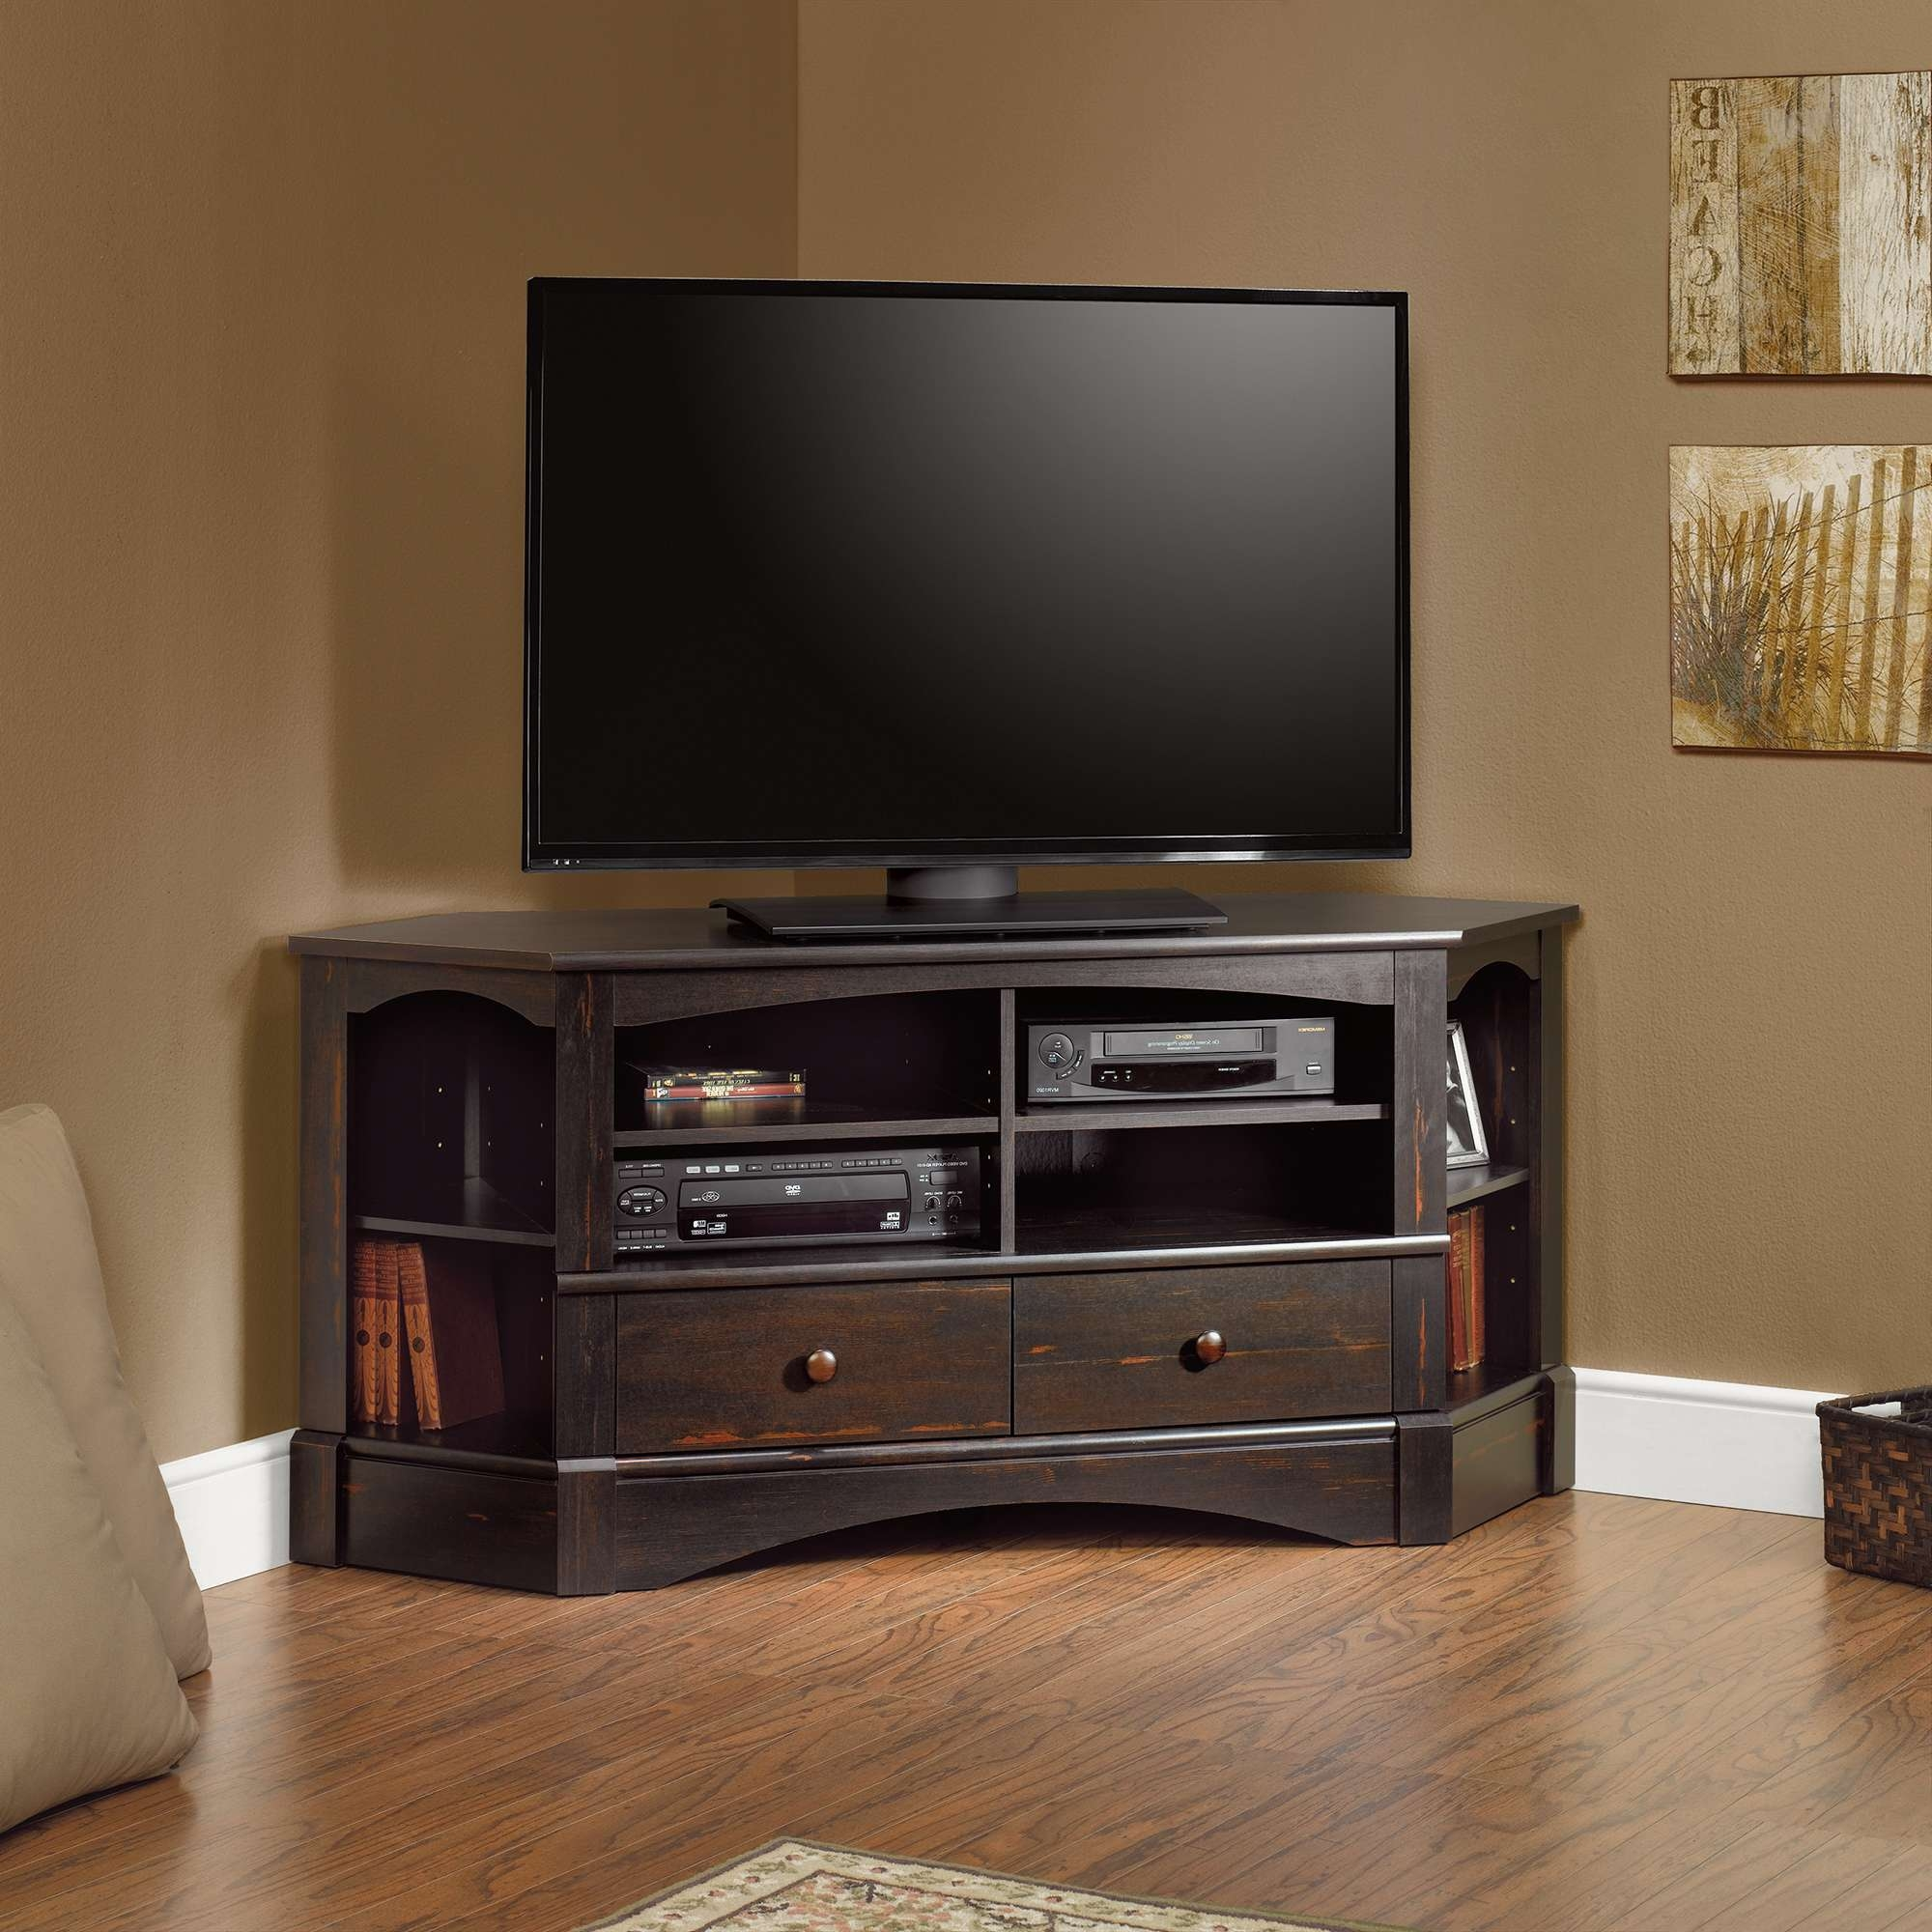 Amazing Corner Tv Stands For Flat Screen Tvs 76 In Small Home For Cheap Corner Tv Stands For Flat Screen (View 15 of 20)